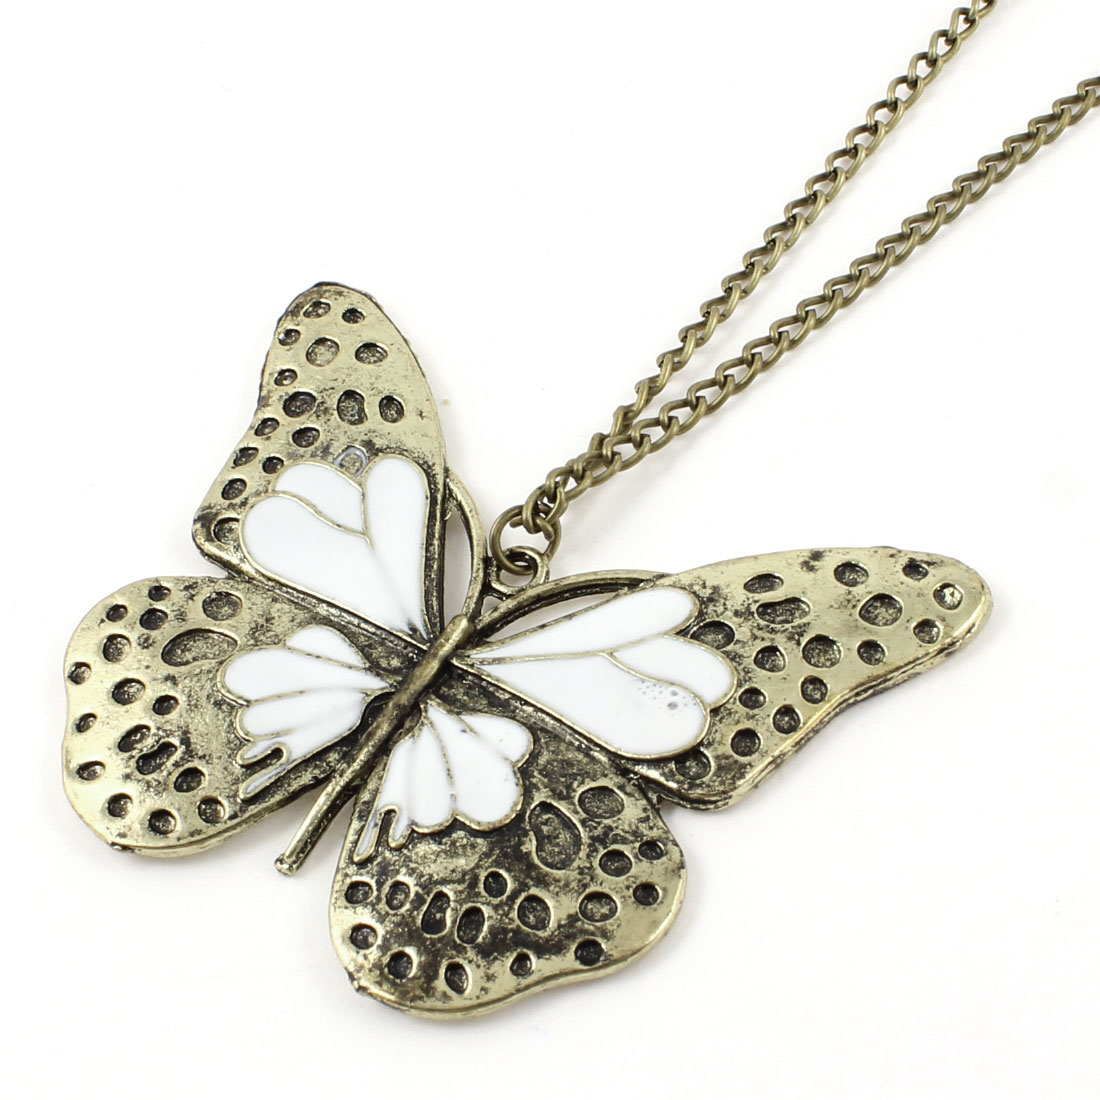 Ladies Lobster Closure Bronze Tone Butterfly Pendant Long Chain Necklace